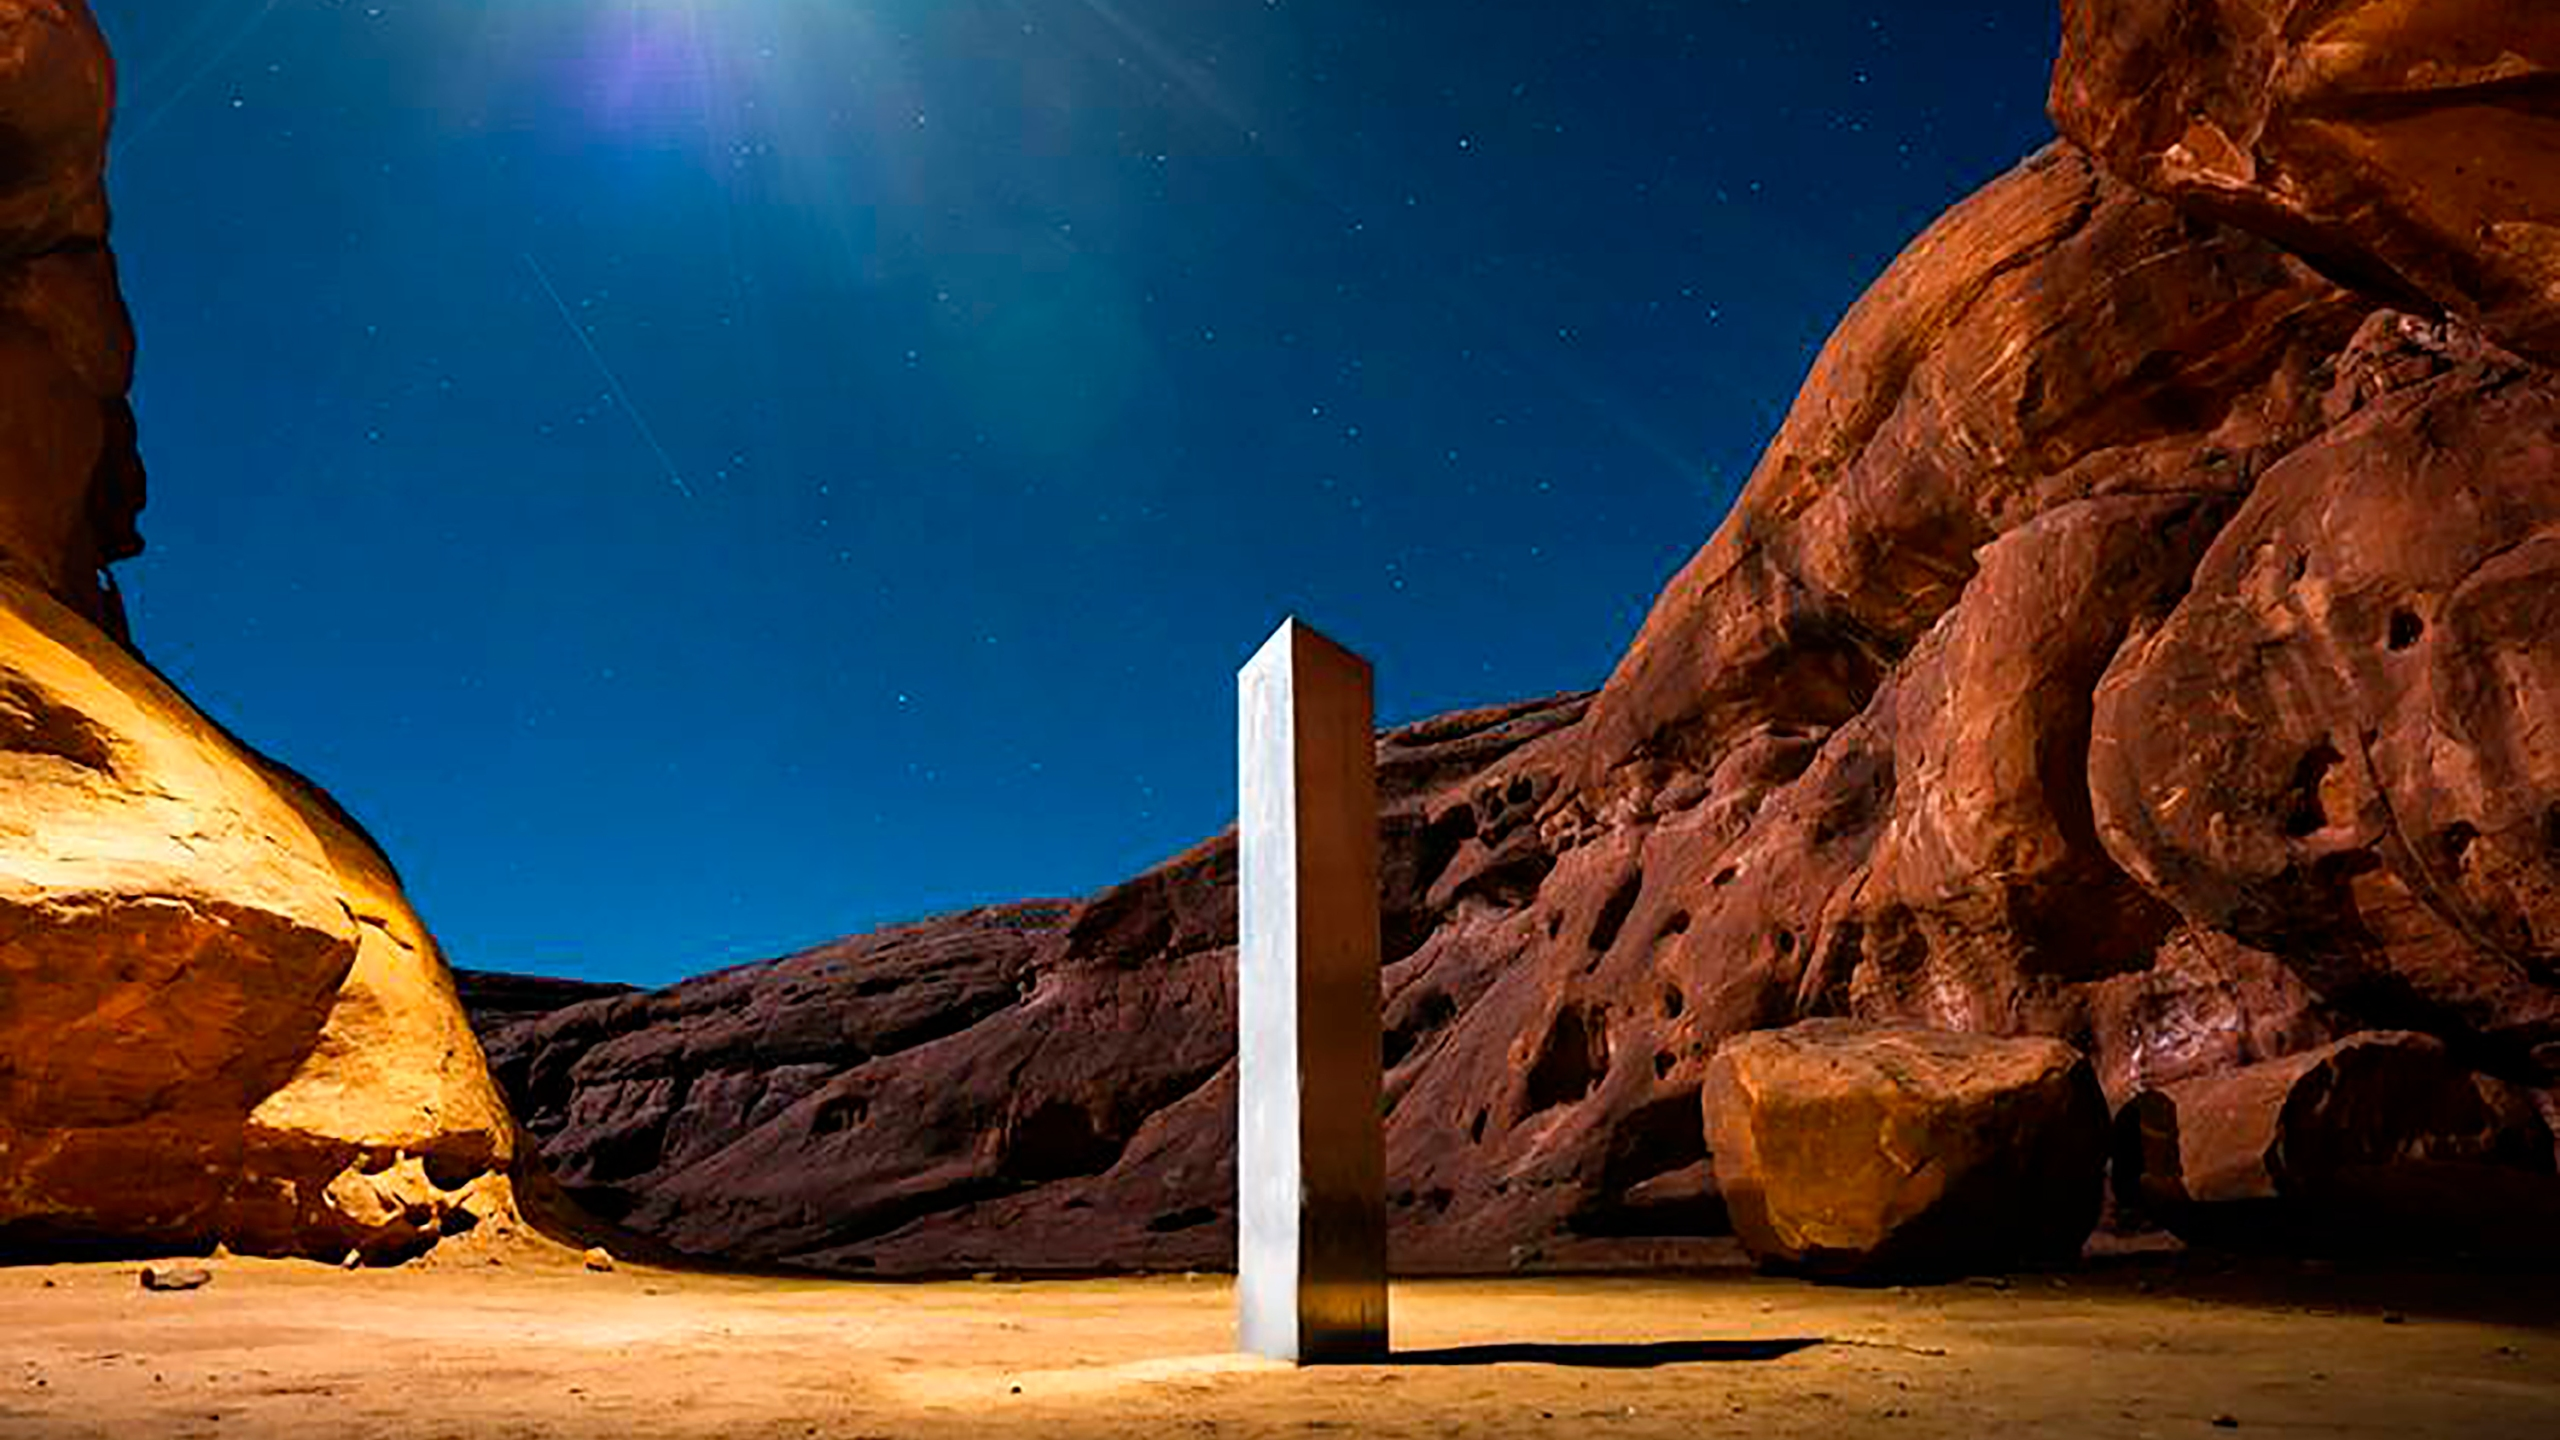 This Nov. 27, 2020, photo by Terrance Siemon shows a monolith that was placed in a red-rock desert in an undisclosed location in San Juan County southeastern Utah. (Terrance Siemon via Associated Press)